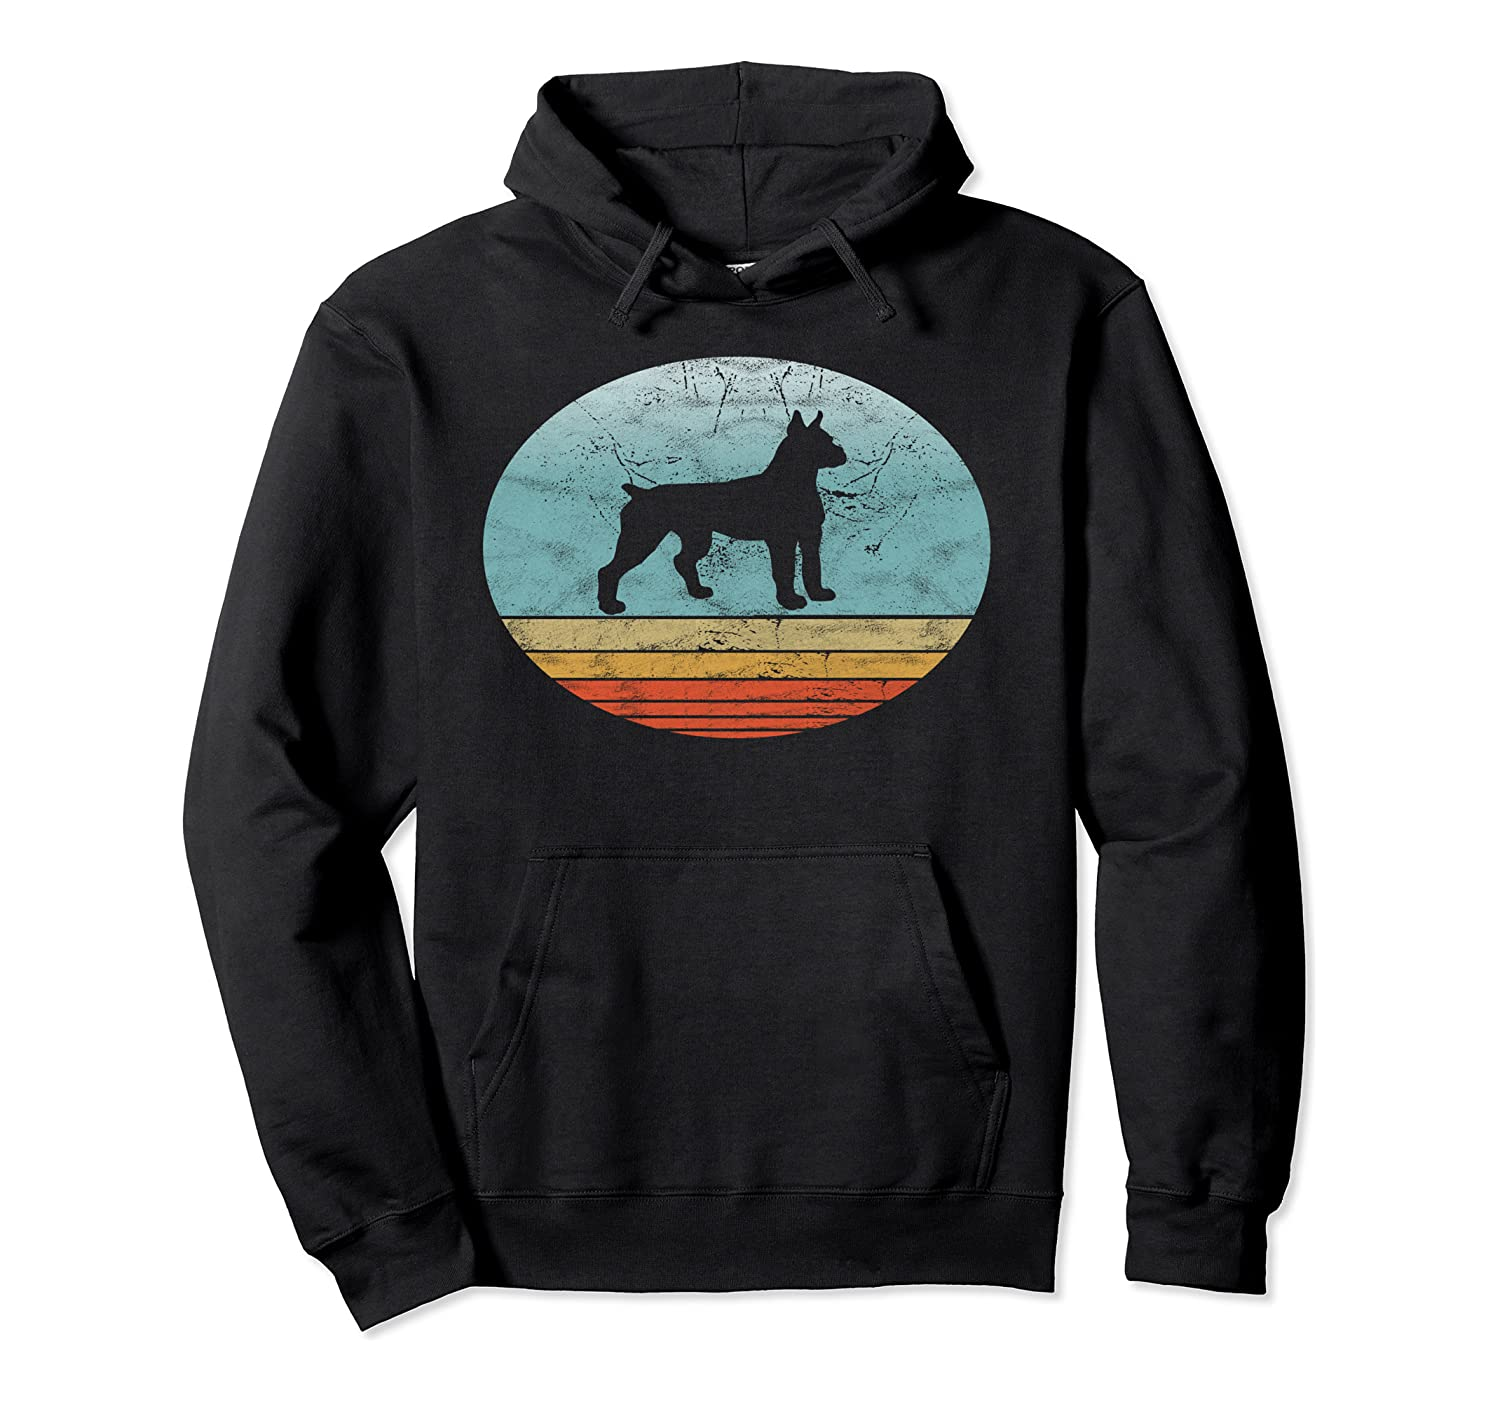 Retro Boxer Dog Breed Vintage Style Animal Dogs Lover Gift Pullover Hoodie